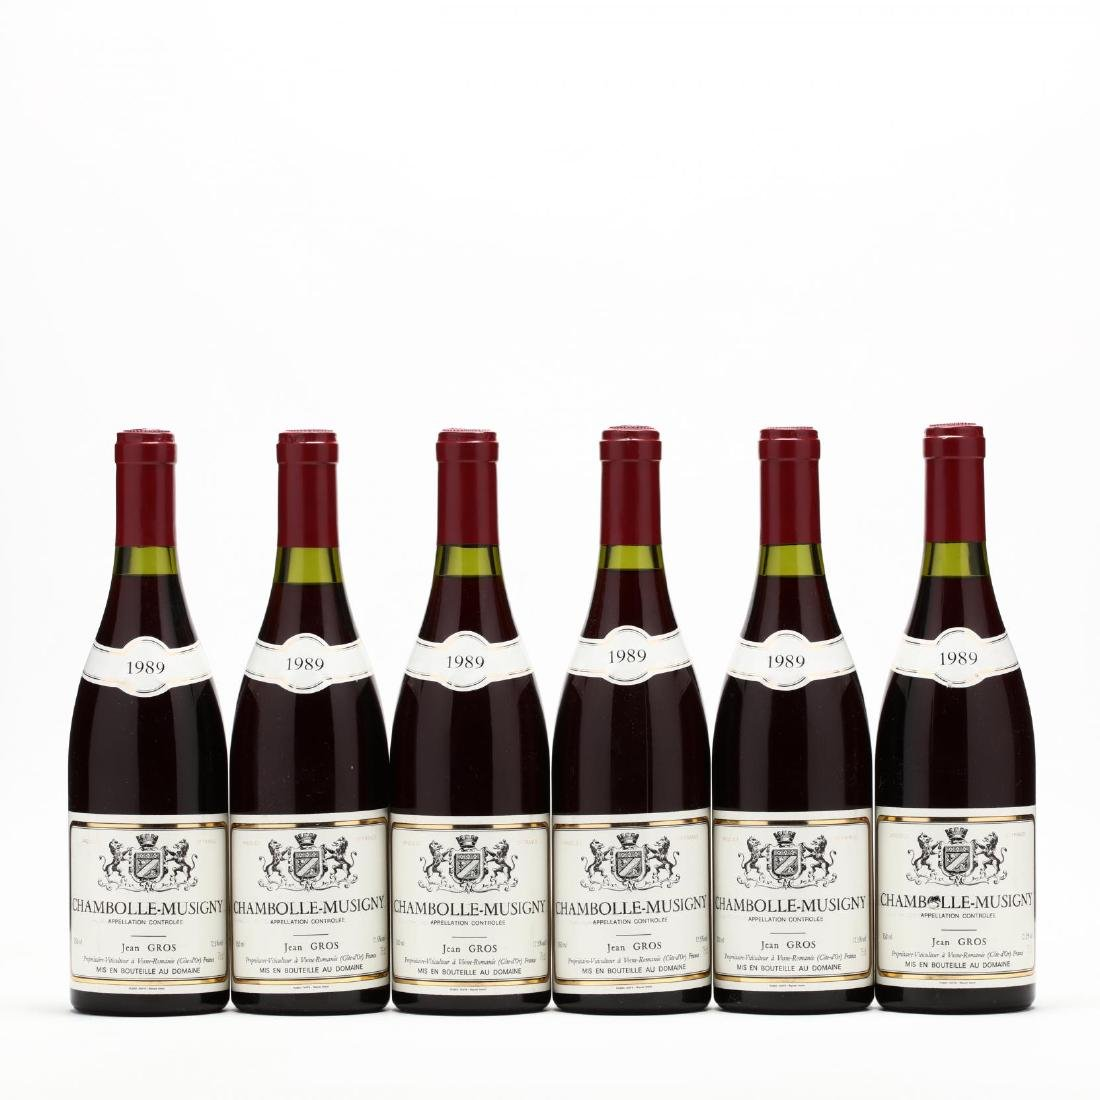 Chambolle Musigny - Vintage 1989